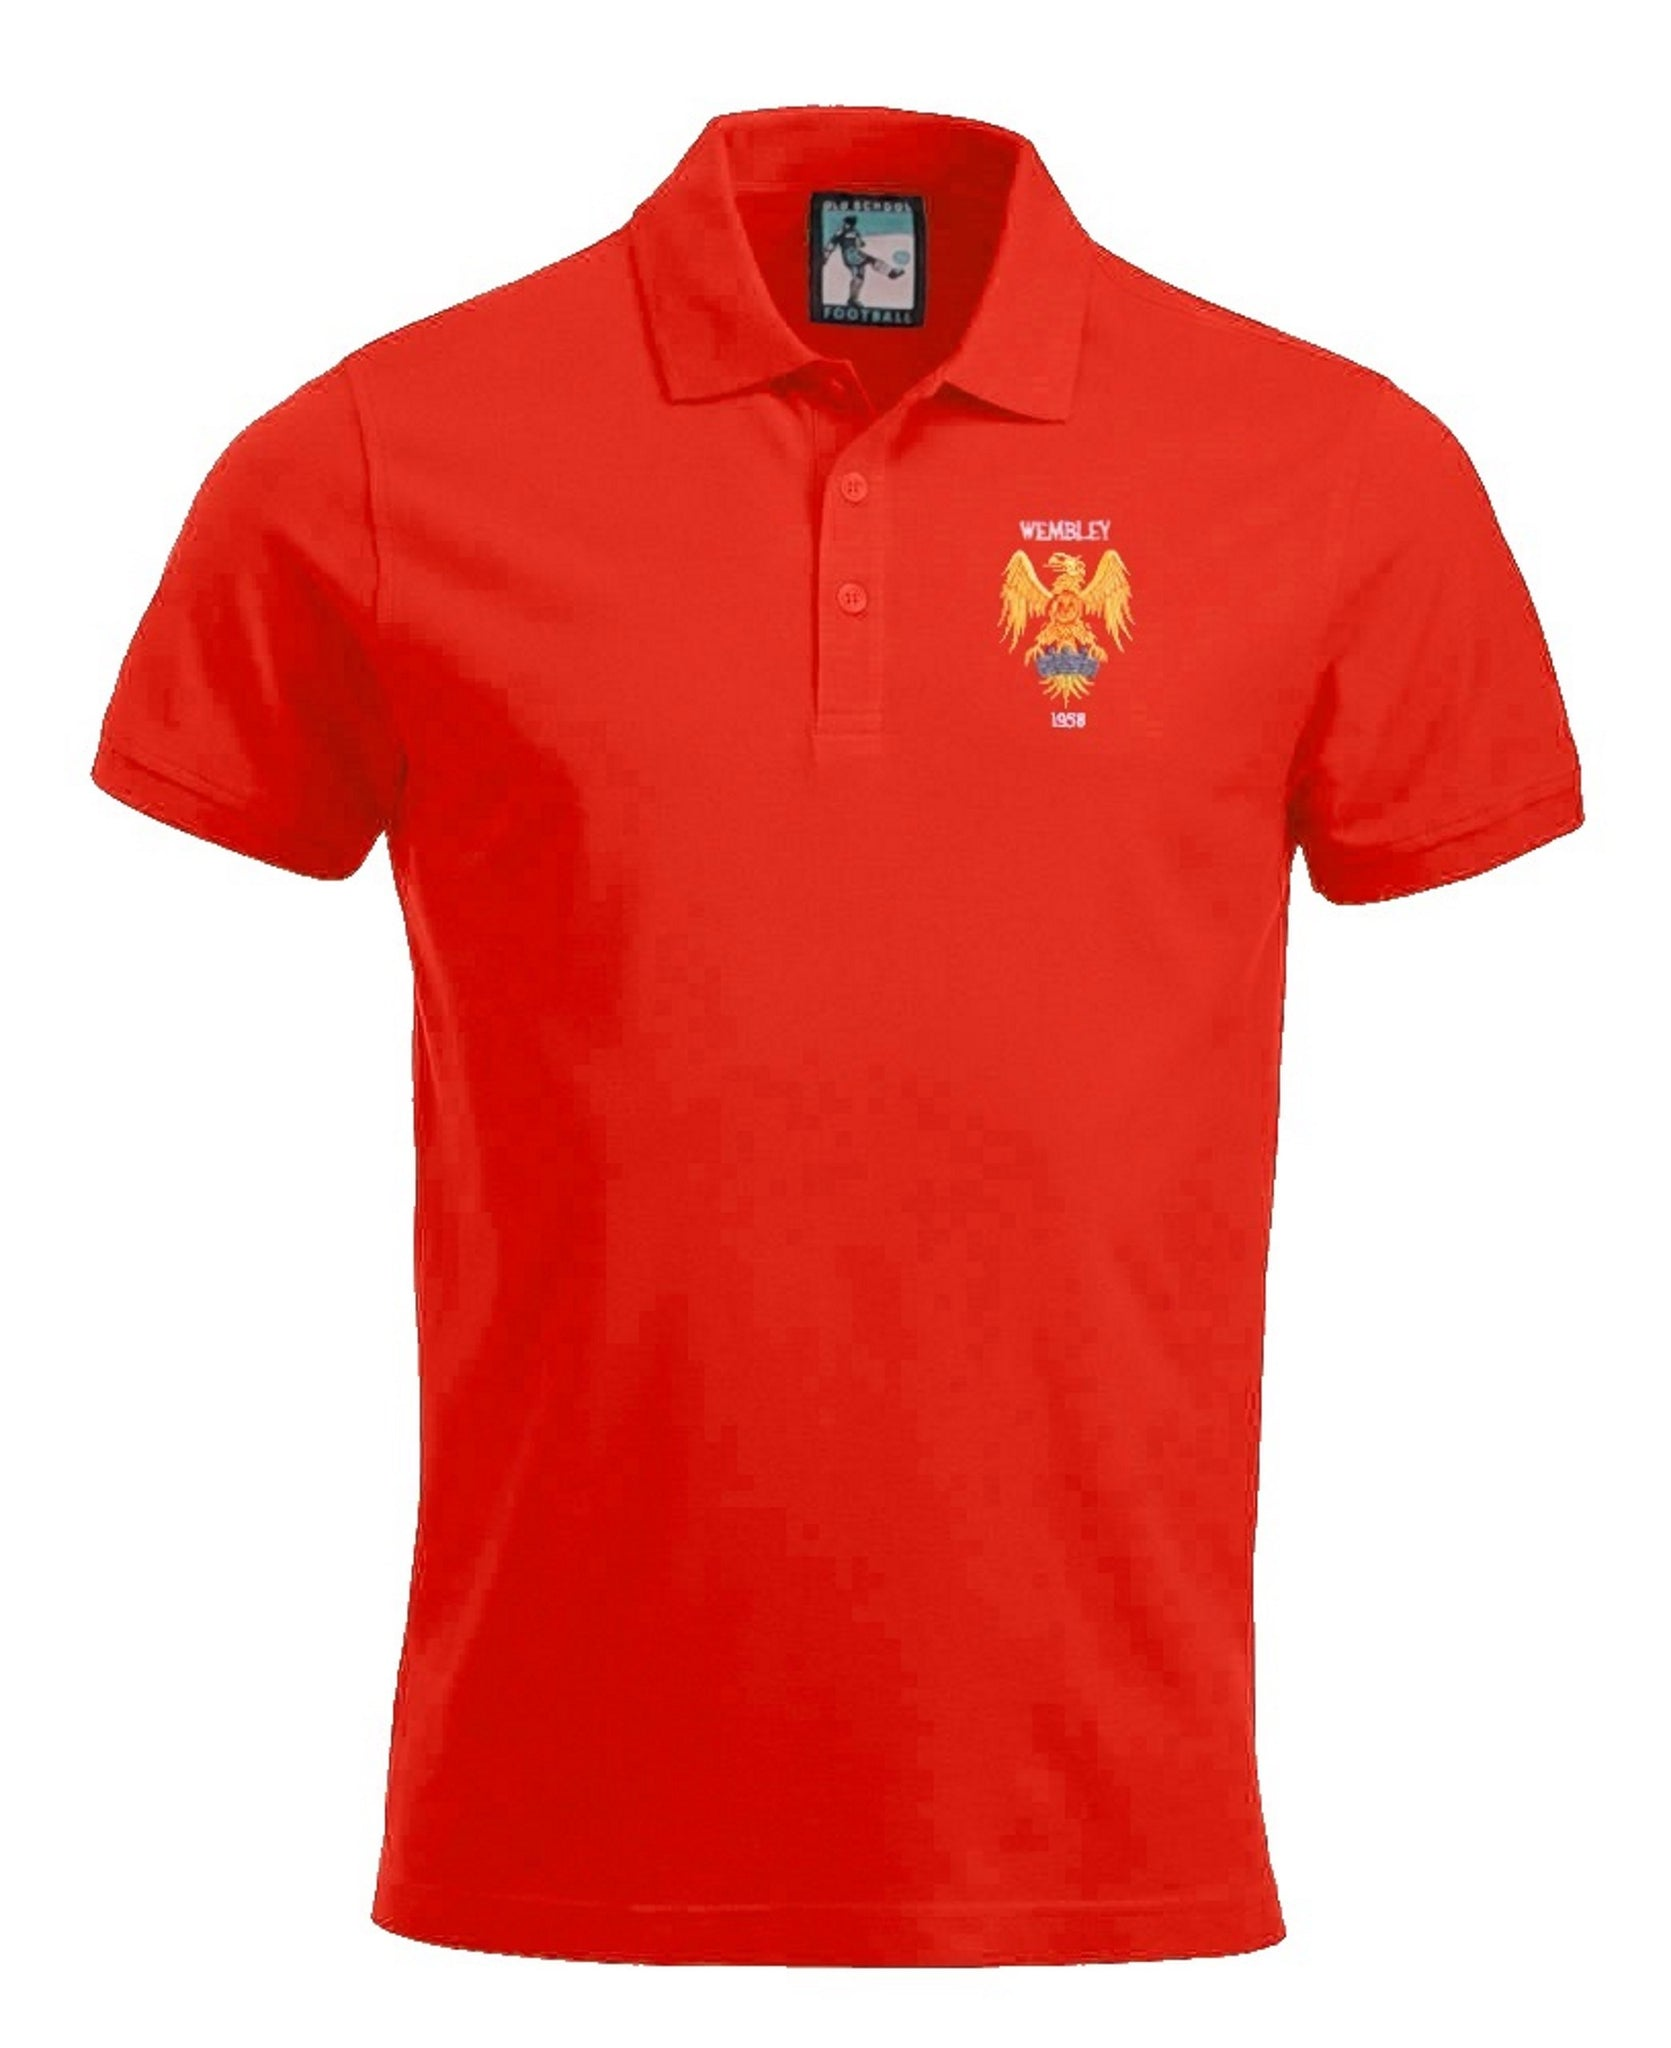 Manchester United 1958 Polo - Old School Football